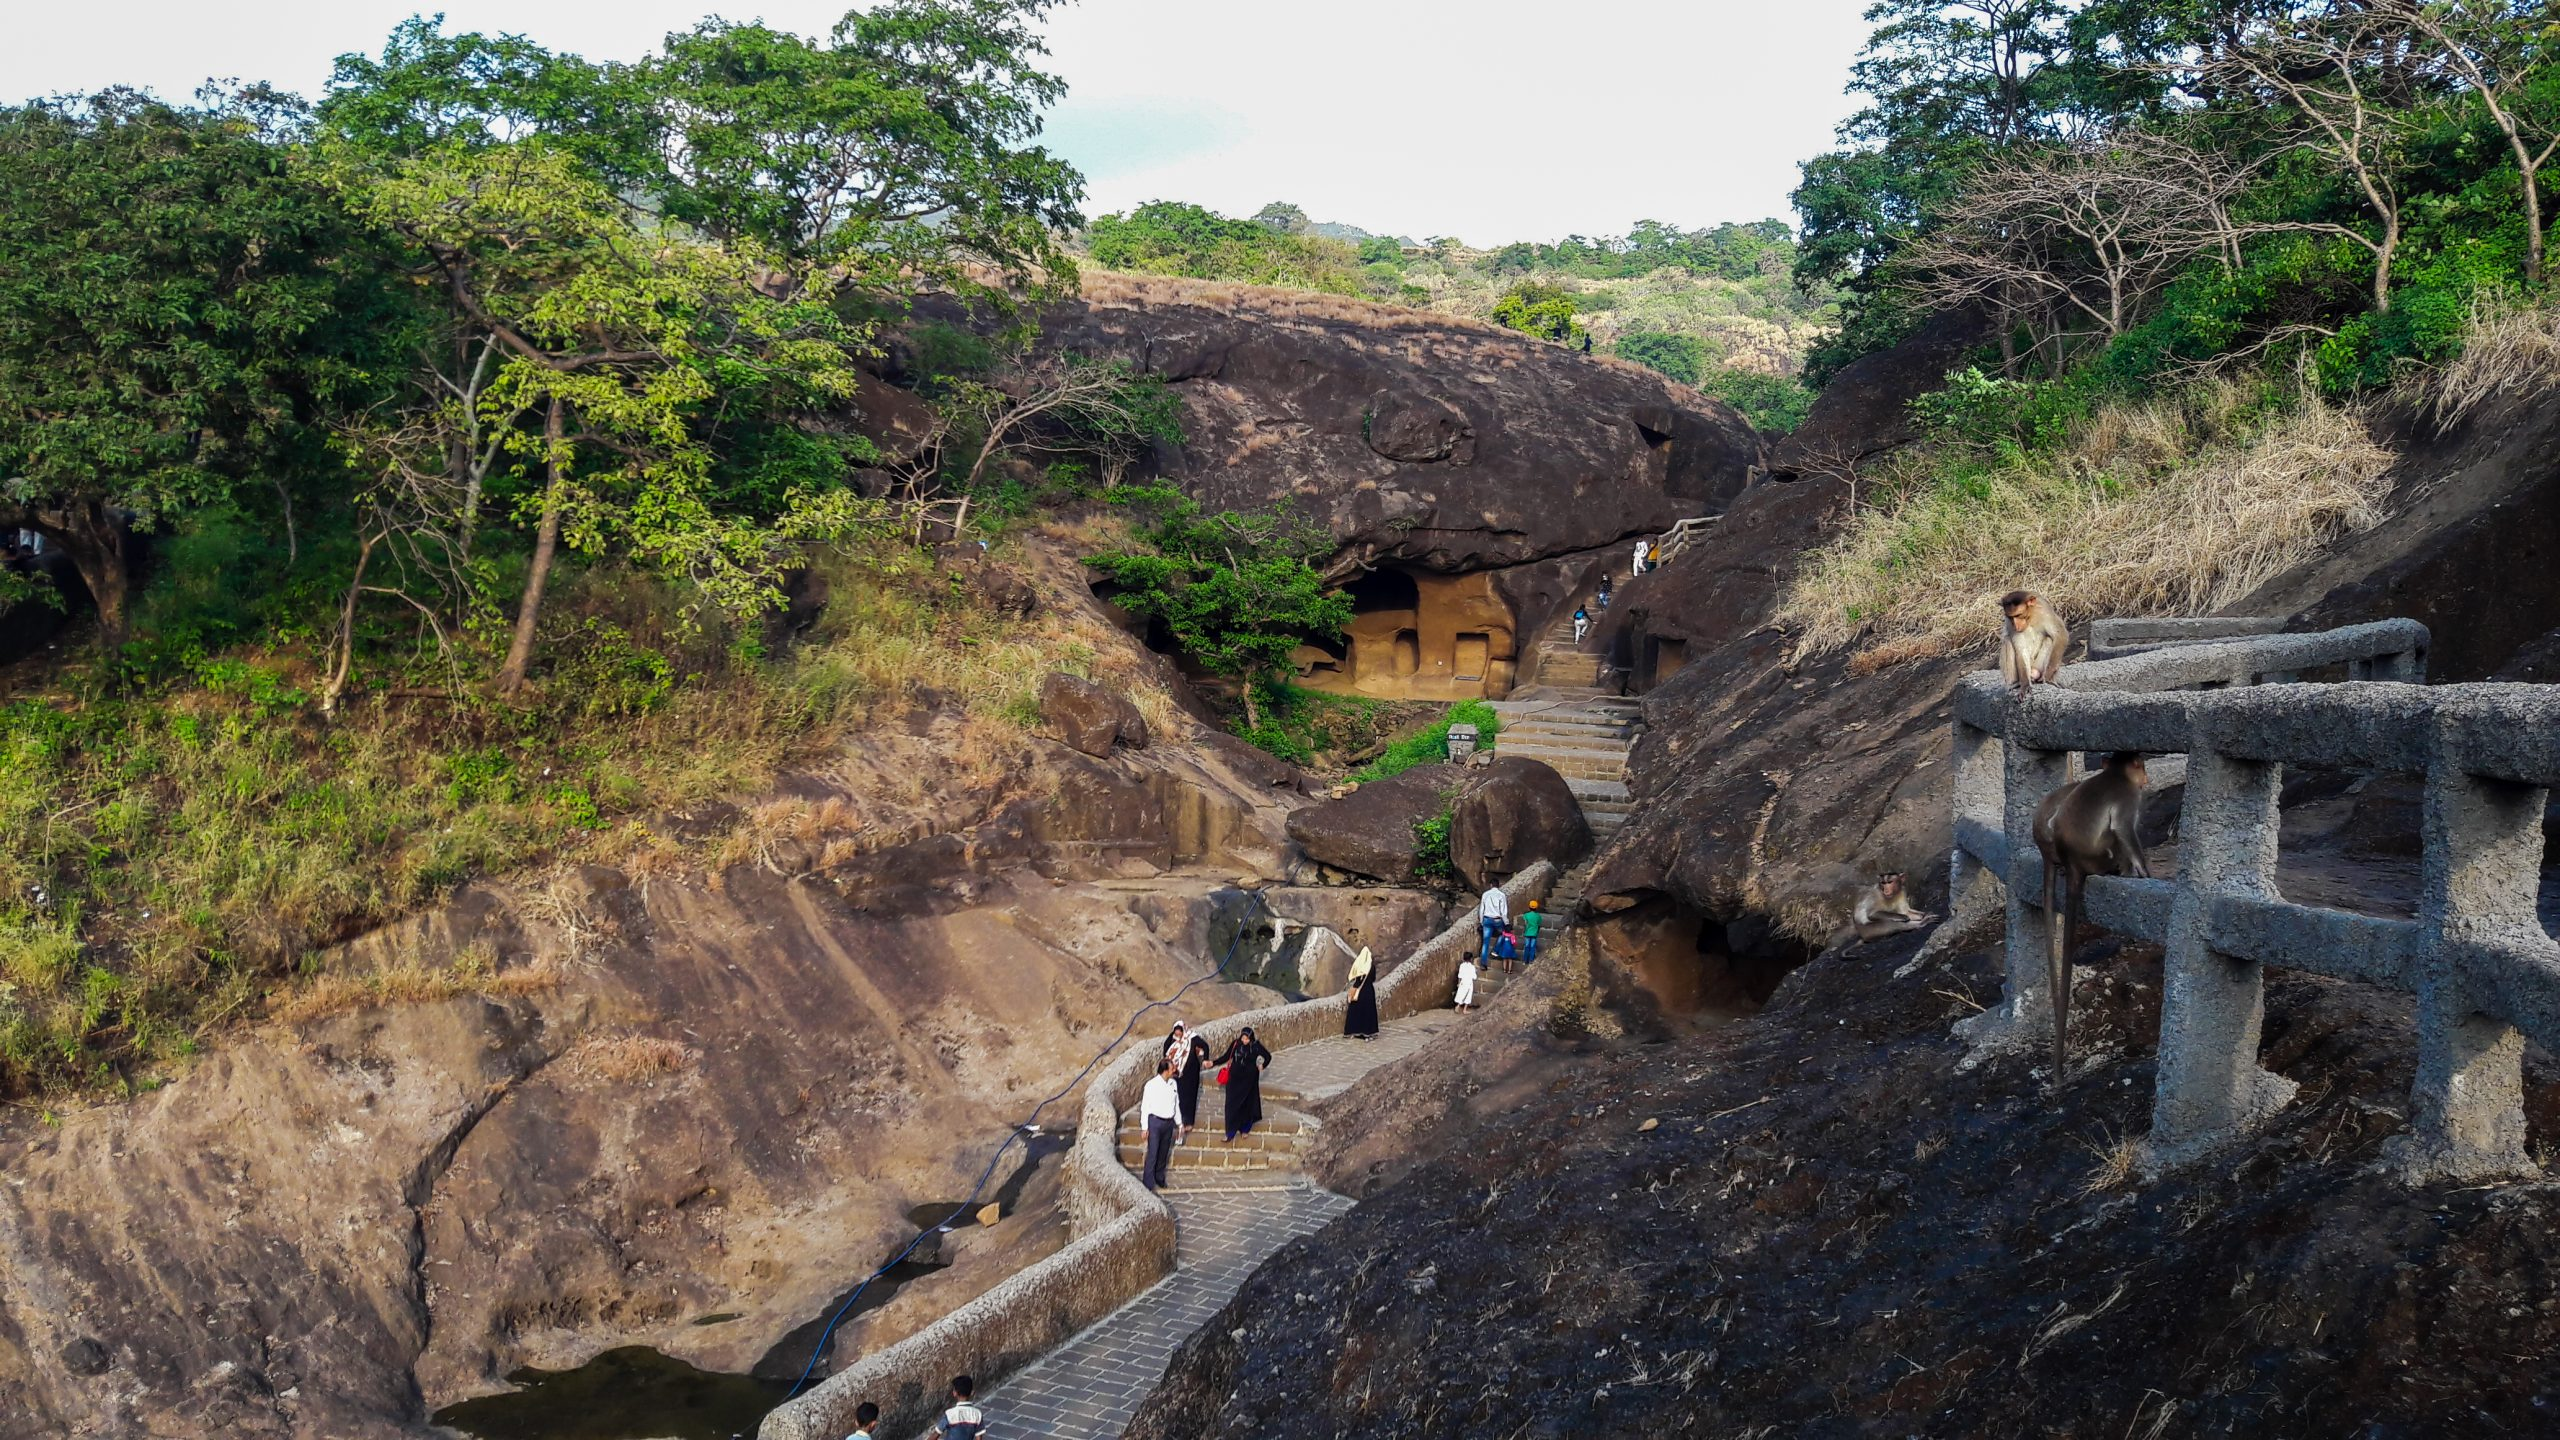 Kanheri caves in Borivali